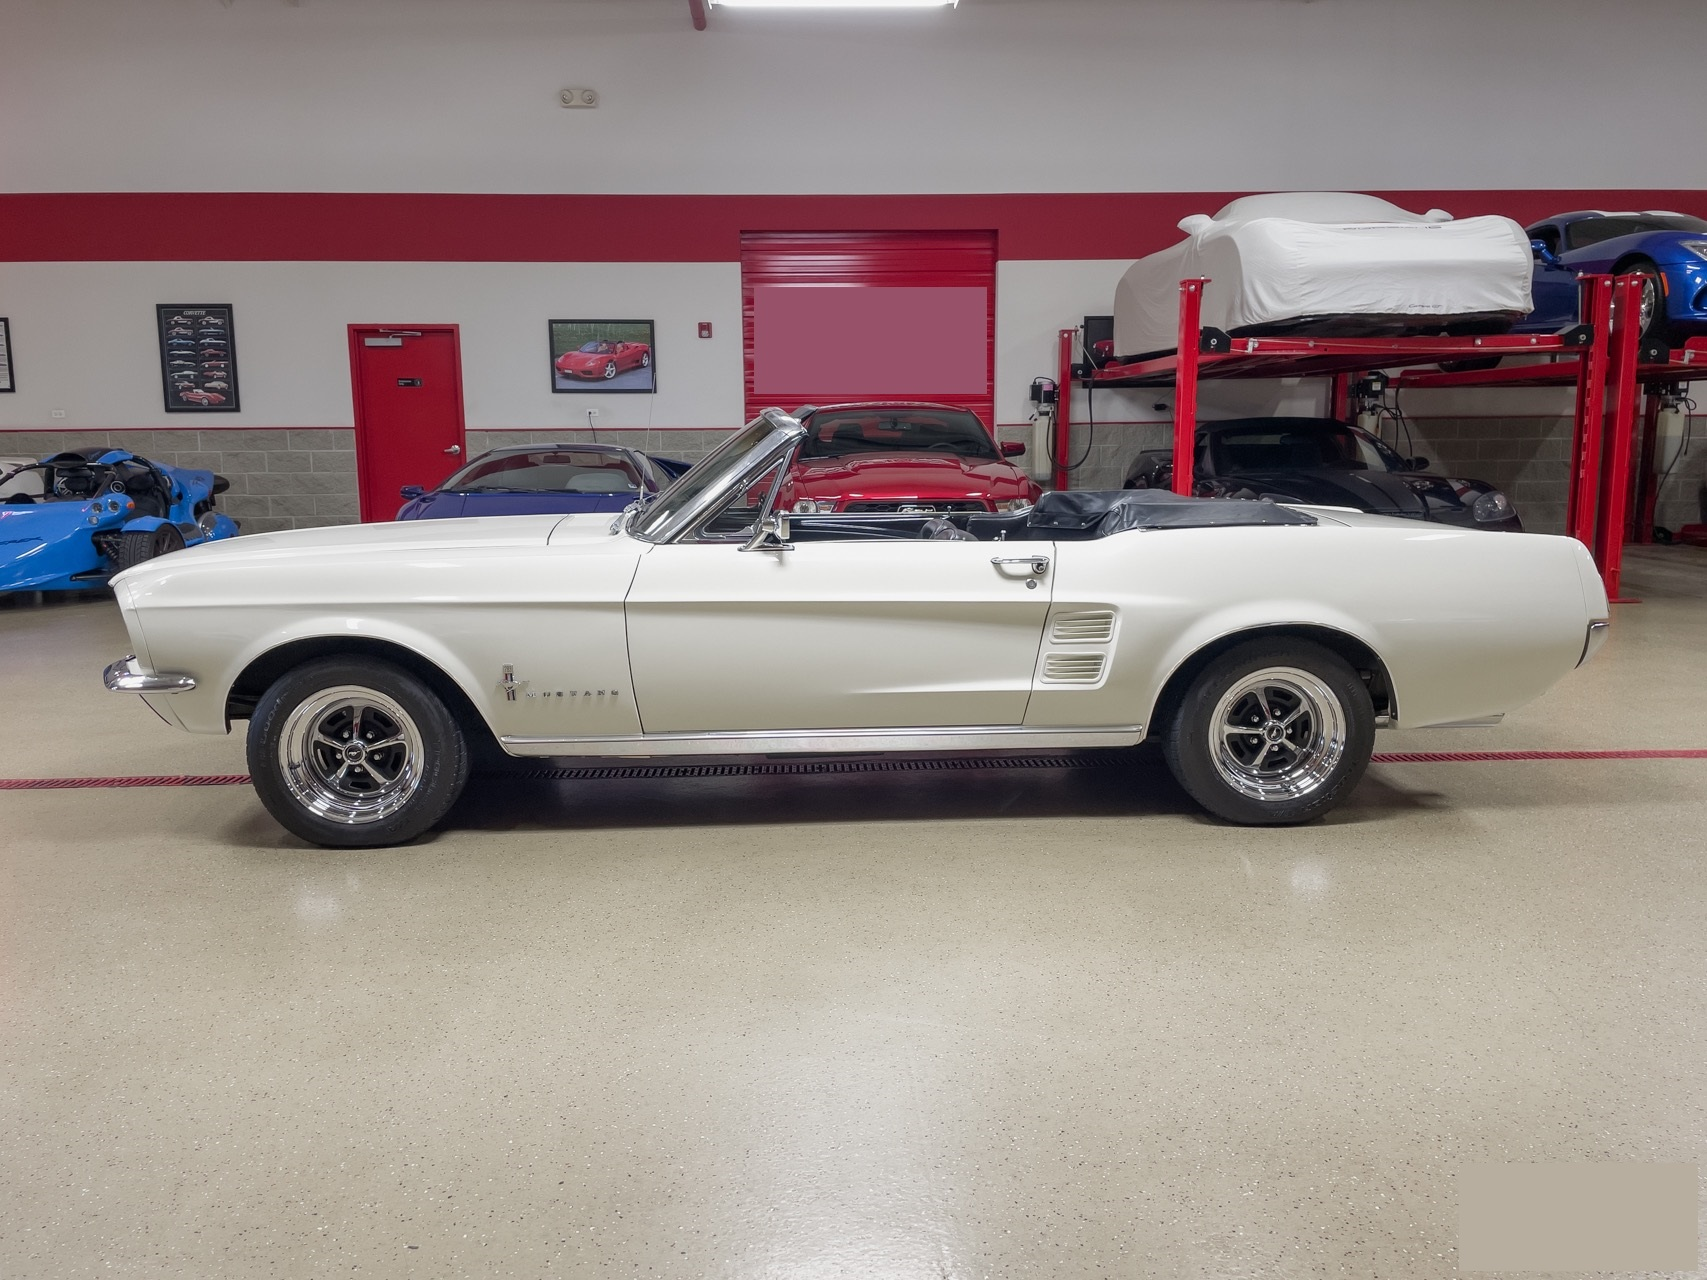 Ford-Mustang-cabriolet-1967-a2